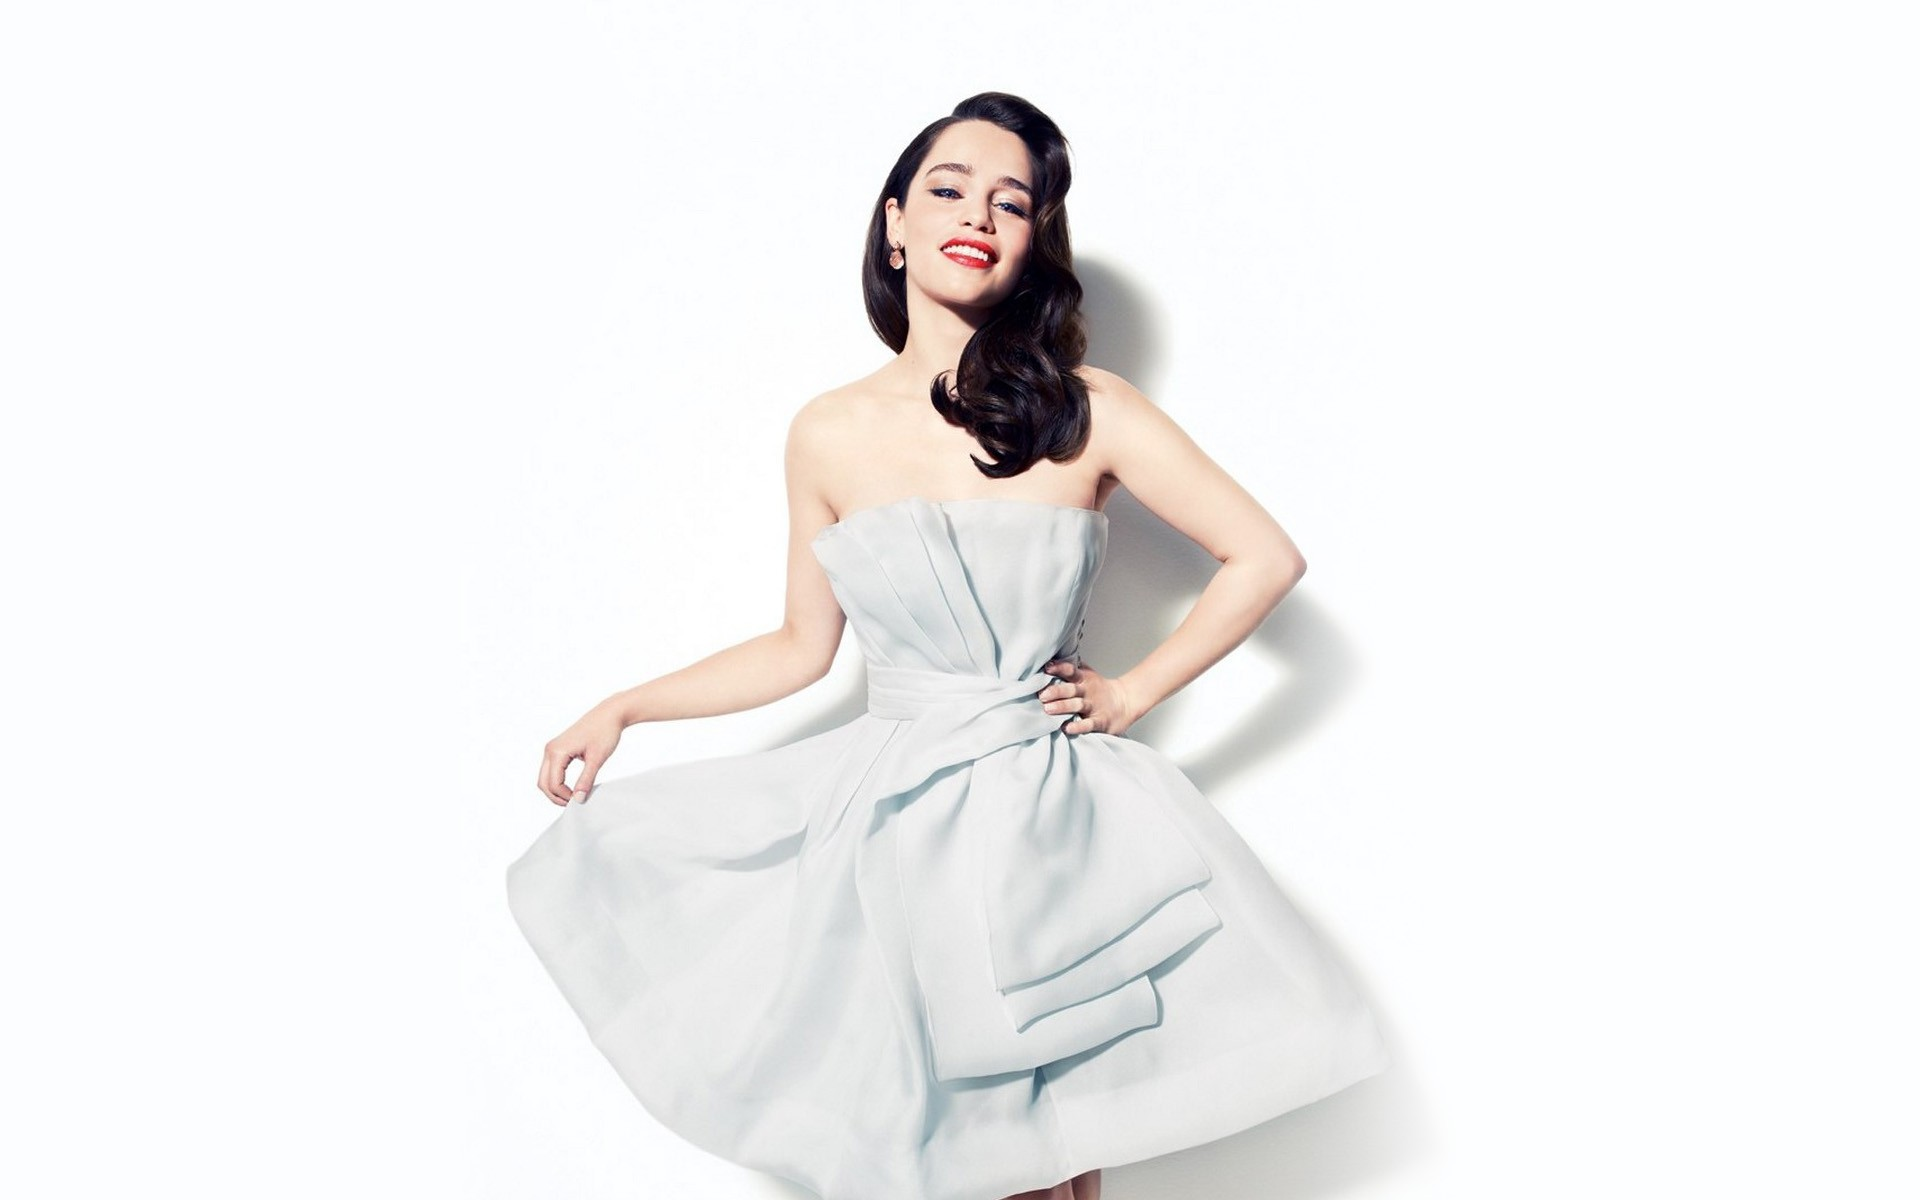 beauty emilia clarke nice white dress still hd background download free photo mobile